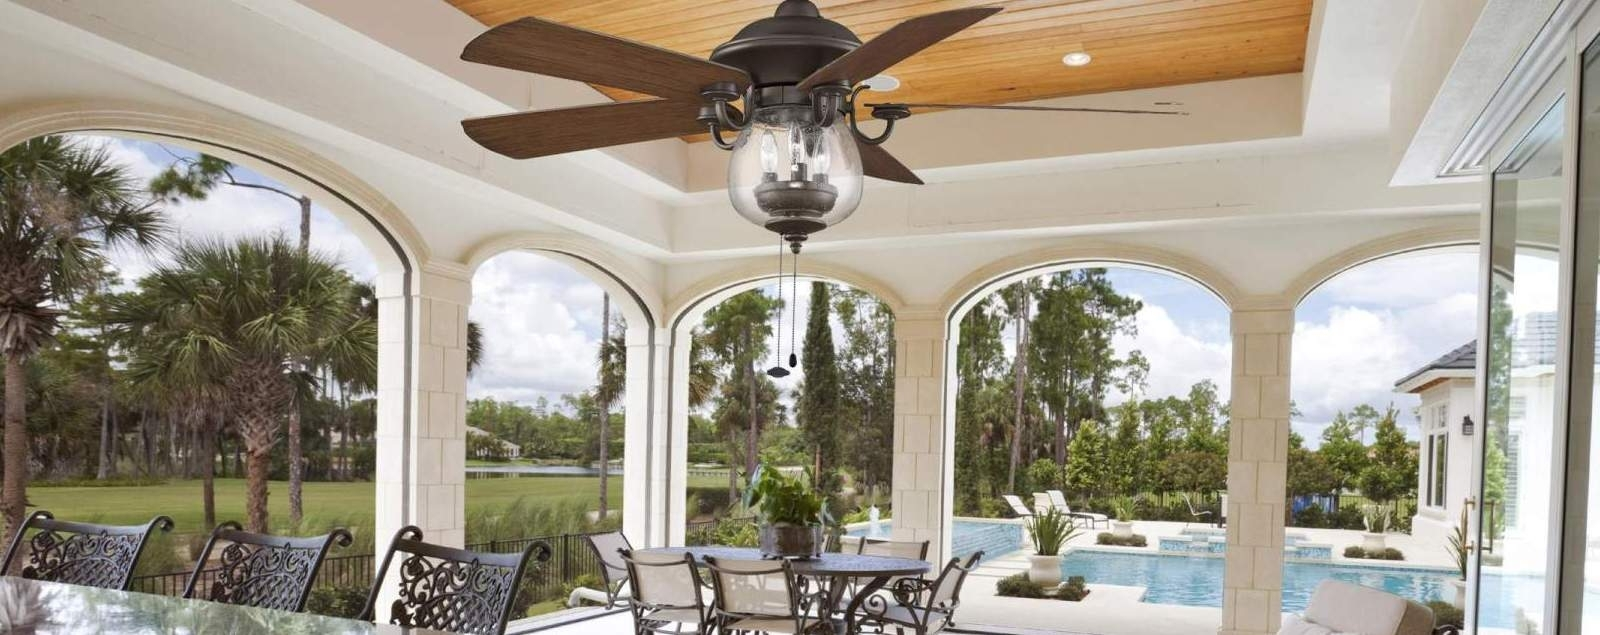 Popular Outdoor Ceiling Fans – Shop Wet, Dry, And Damp Rated Outdoor Fans Inside Rust Proof Outdoor Ceiling Fans (View 11 of 20)